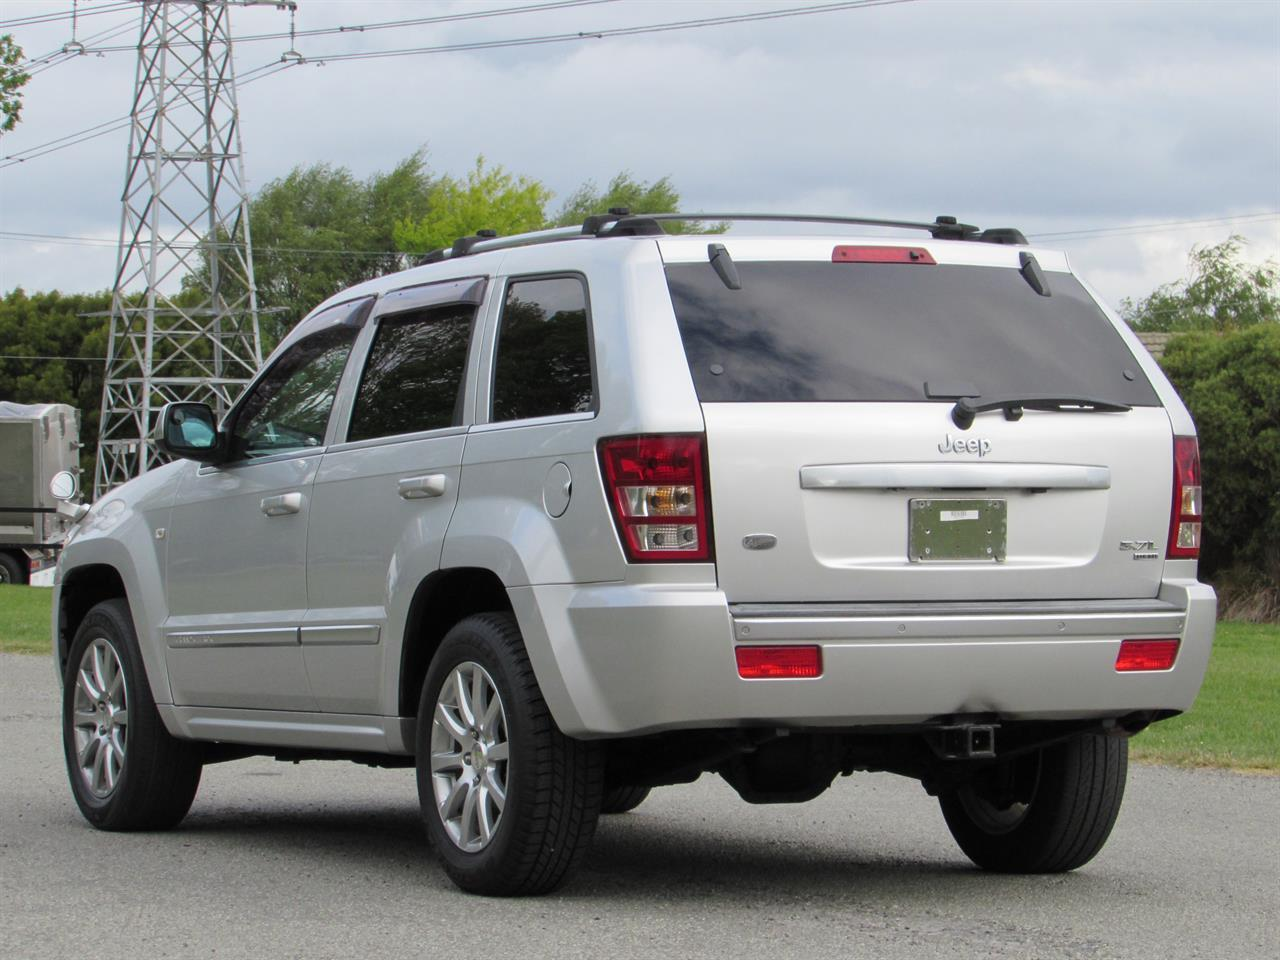 image-3, 2007 Jeep Grand Cherokee Limited 5.7L Hemi V8 at Christchurch